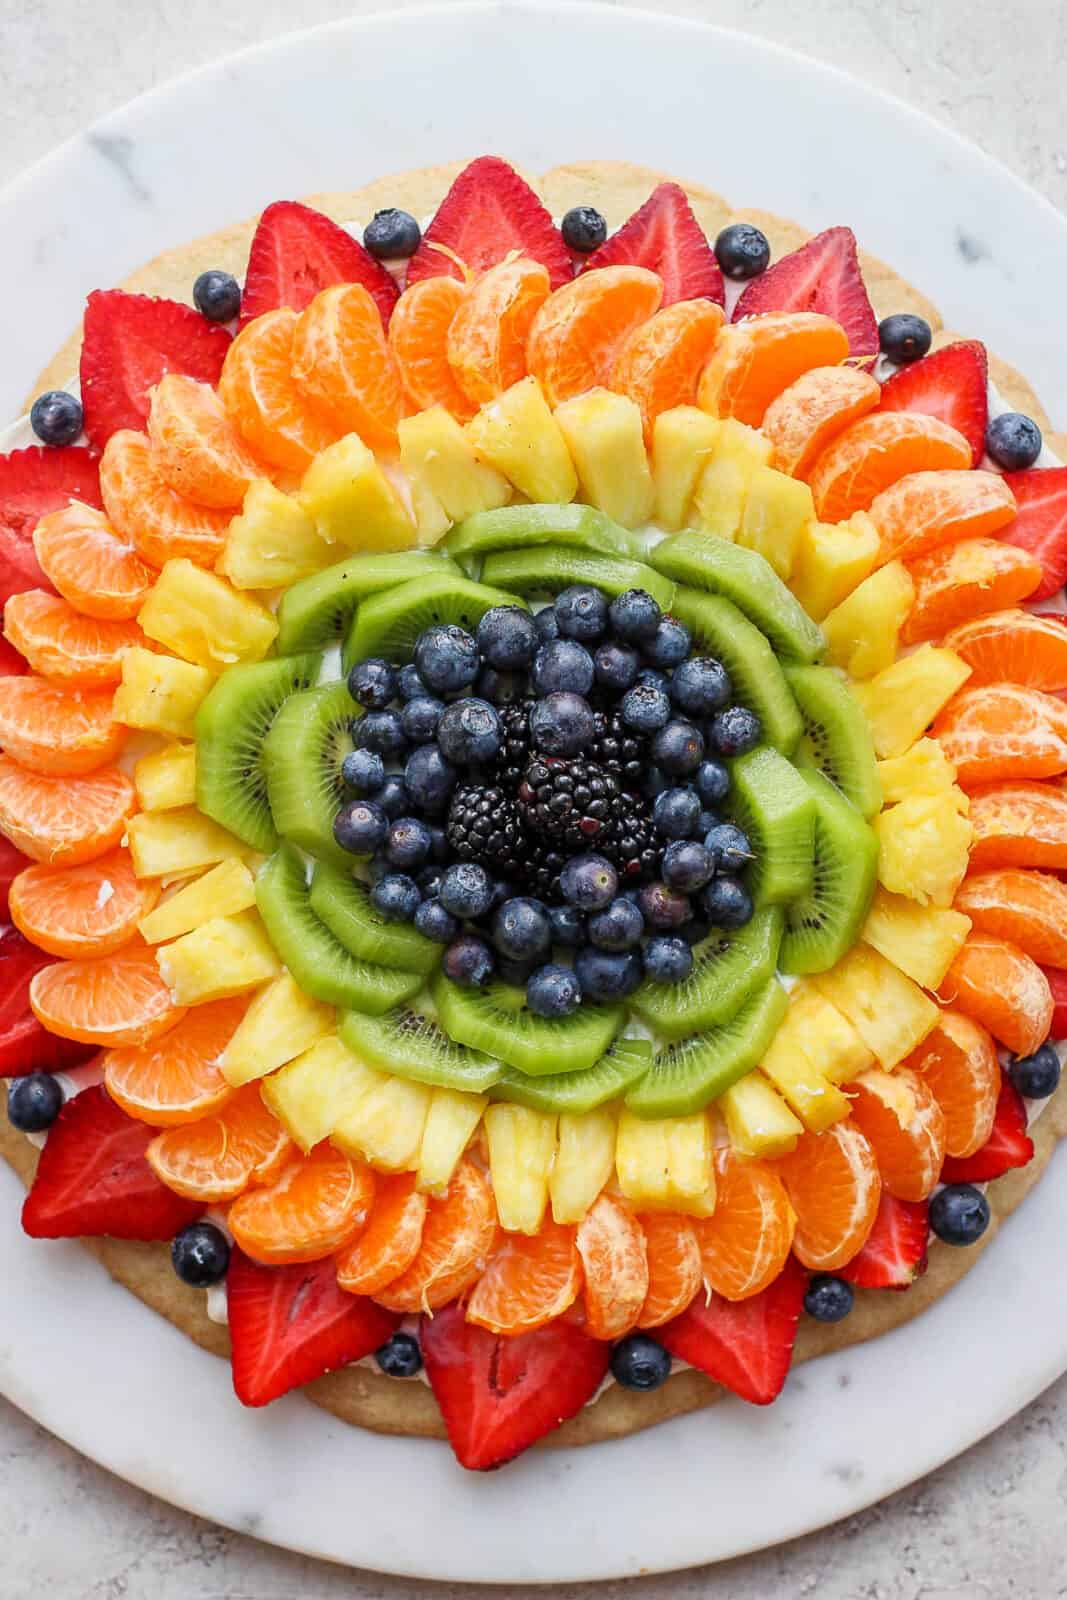 A close-up of a fruit pizza.